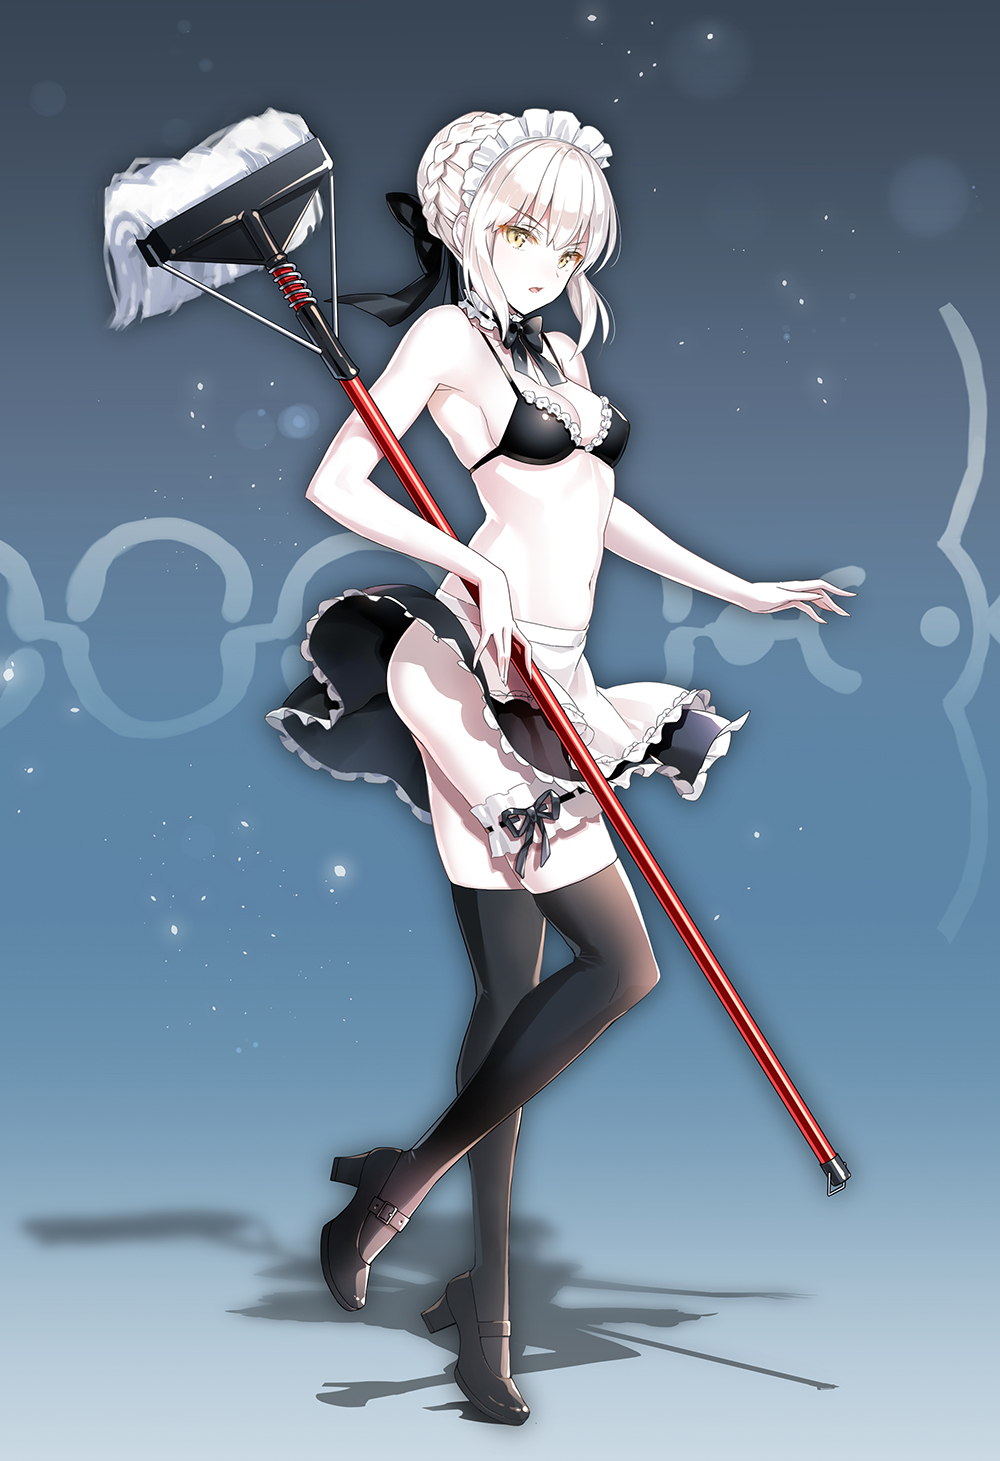 1girl apron artoria_pendragon_(all) artoria_pendragon_(swimsuit_rider_alter) bangs bare_arms bare_shoulders bikini_top black_bikini_top black_bow black_footwear black_legwear black_skirt blush bow braid breasts brown_eyes commentary_request eyebrows_visible_through_hair fate/grand_order fate_(series) frilled_apron frills full_body hair_between_eyes hair_bow hair_bun high_heels highres holding light_brown_hair maid_headdress medium_breasts mop navel parted_lips shoes sidelocks skirt solo standing standing_on_one_leg suishougensou thigh-highs tiptoes waist_apron white_apron